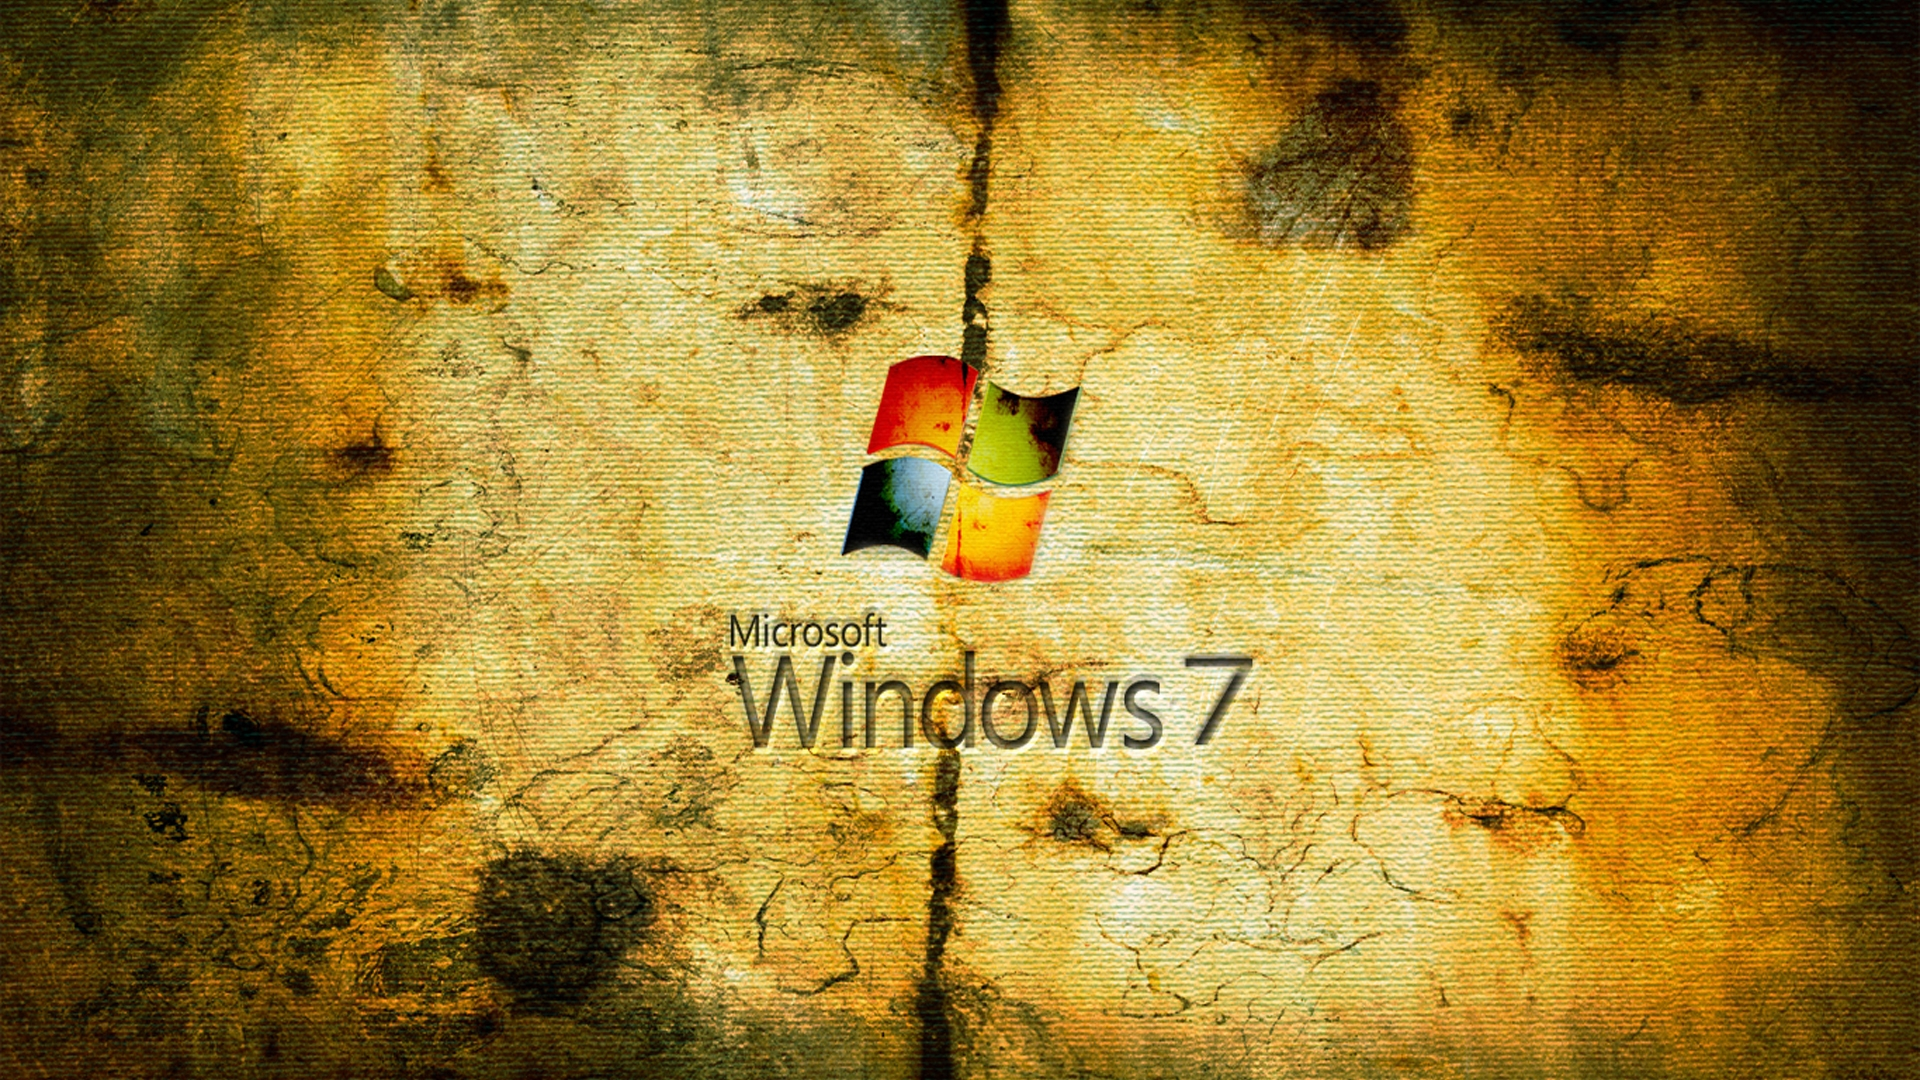 Worn Windows 7 Wallpaper